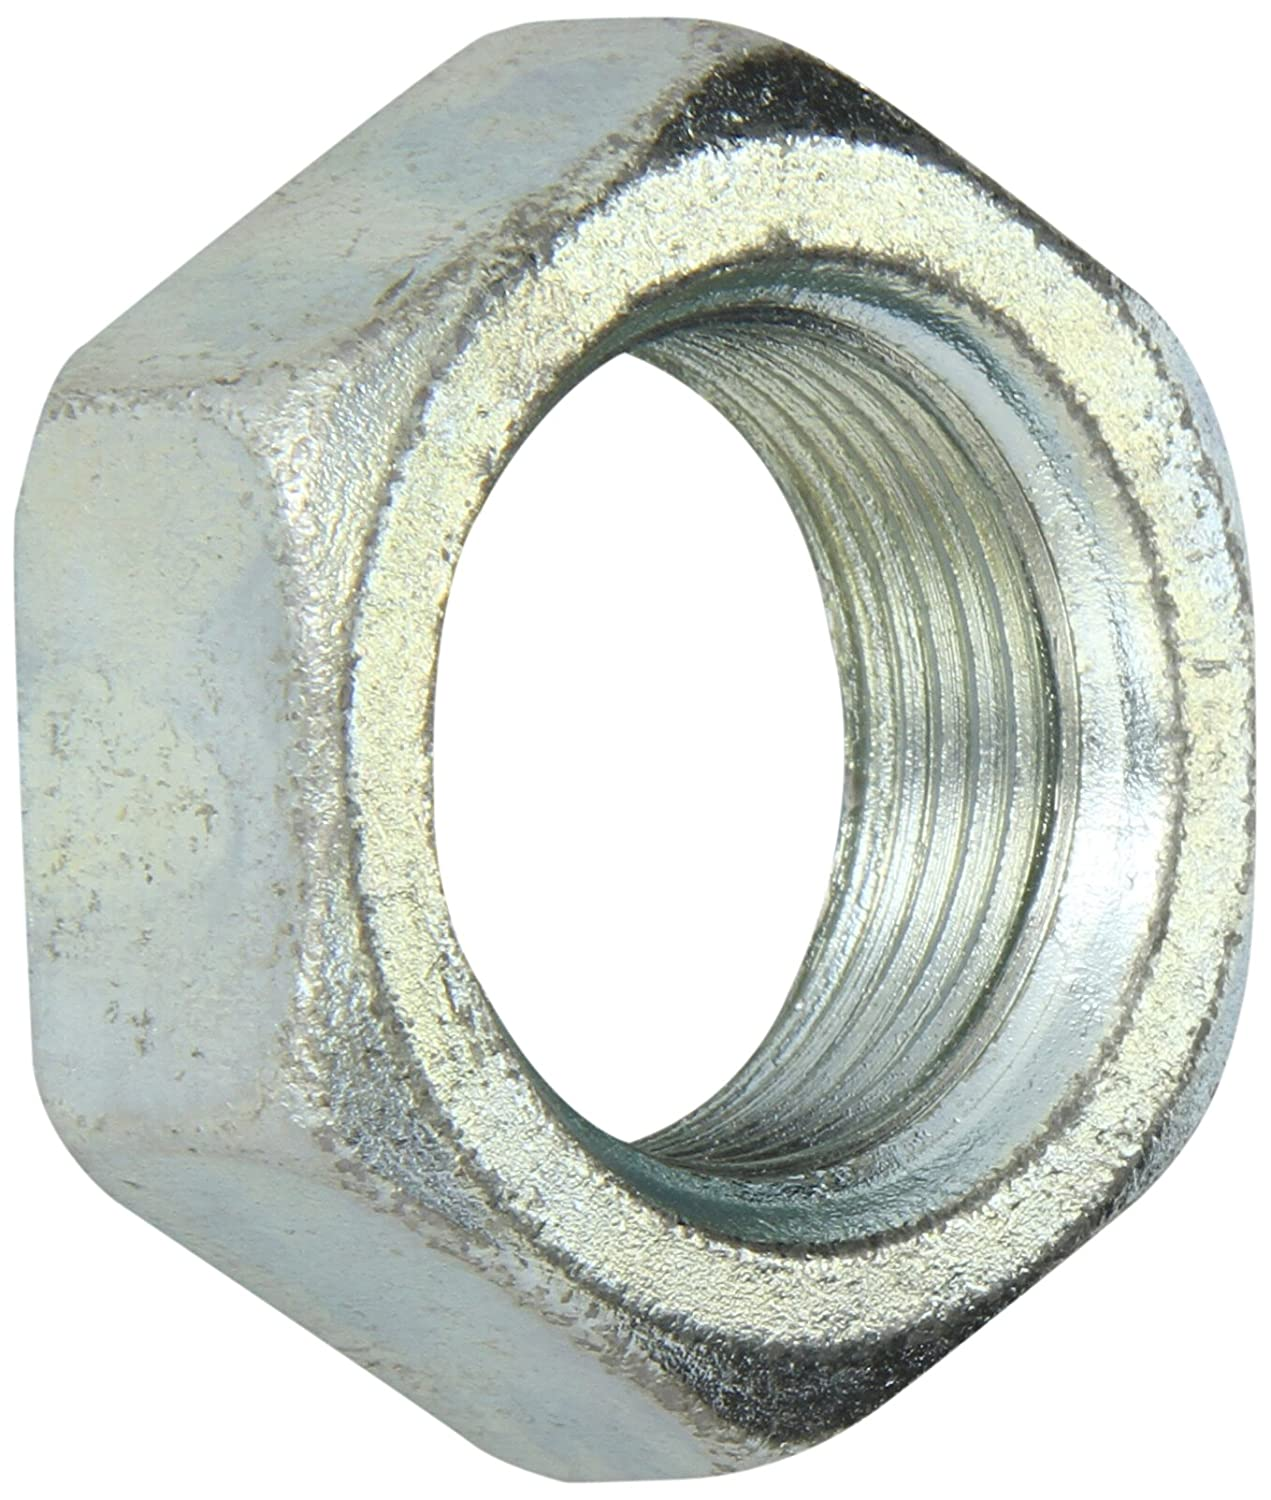 Parker L073801400 Mounting Nut, for use with 2-1/2 Bore Cylinder